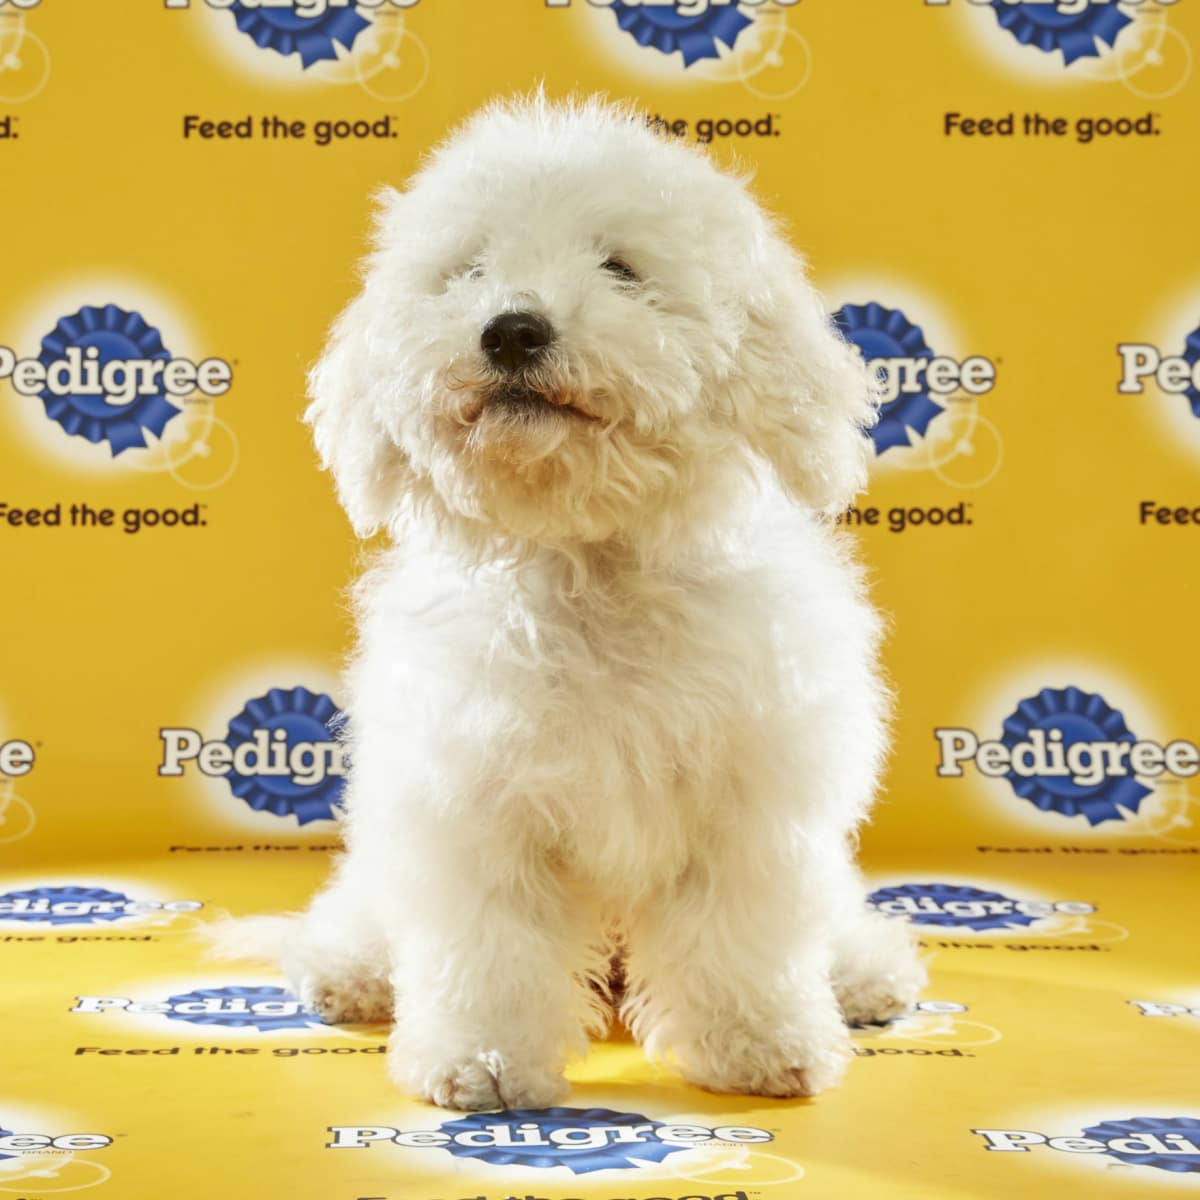 Puppy Bowl 2016 Poppy dog Sherry Stephens Animal Planet